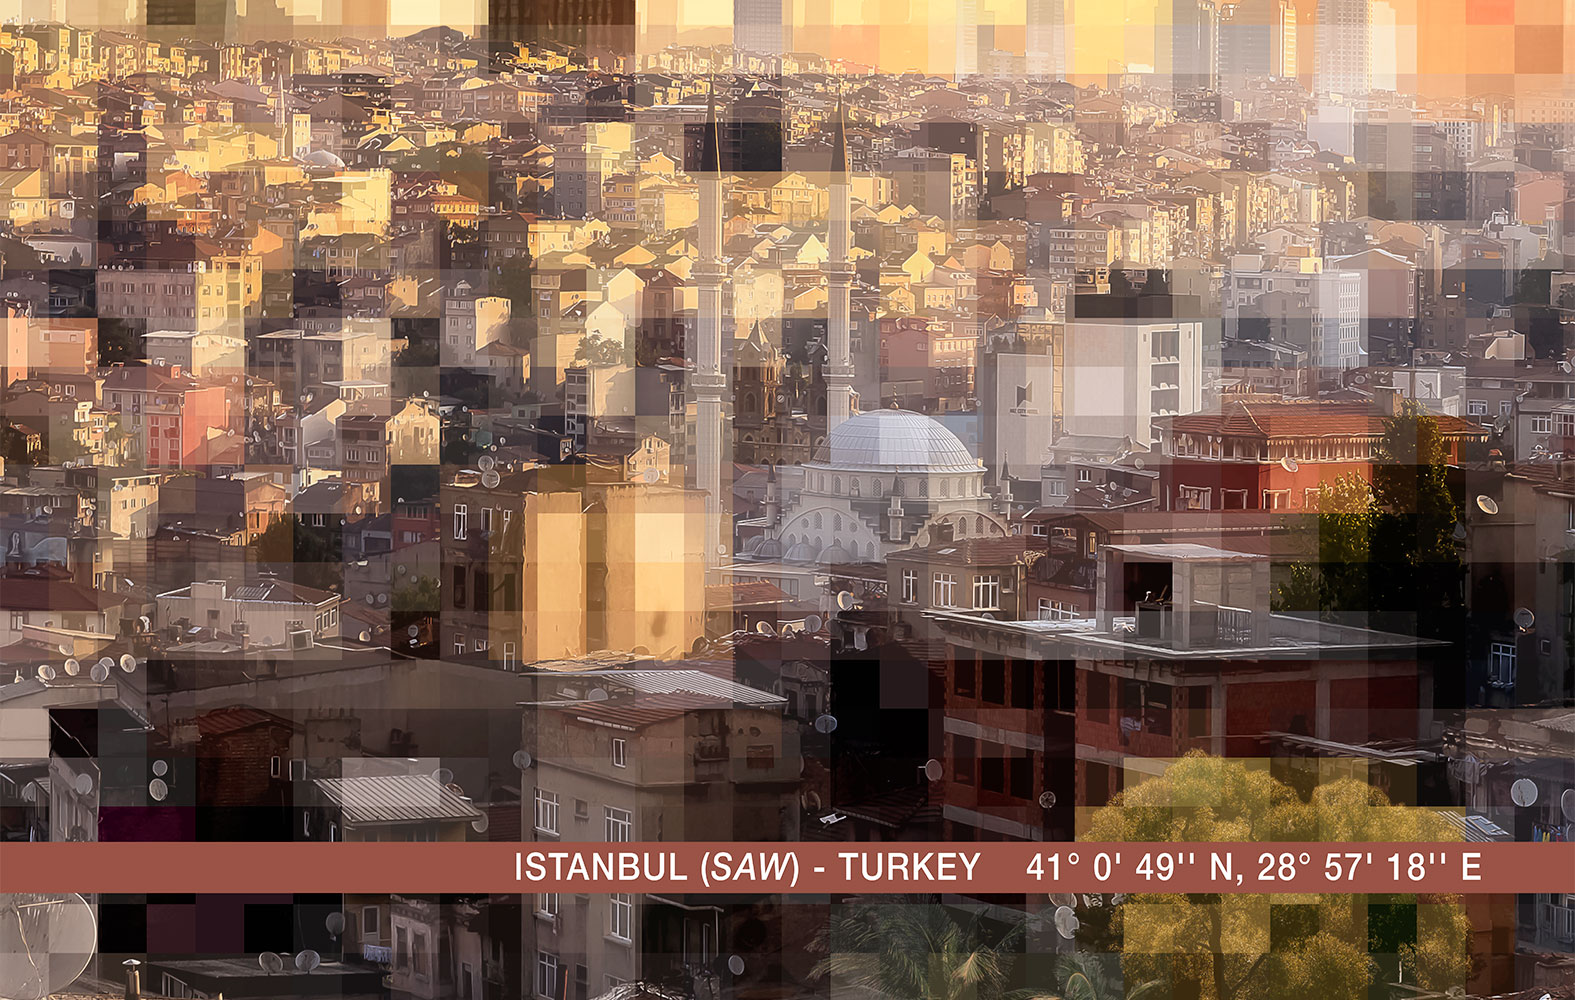 StudioErnst-HMShost-cityscapes-istanbul